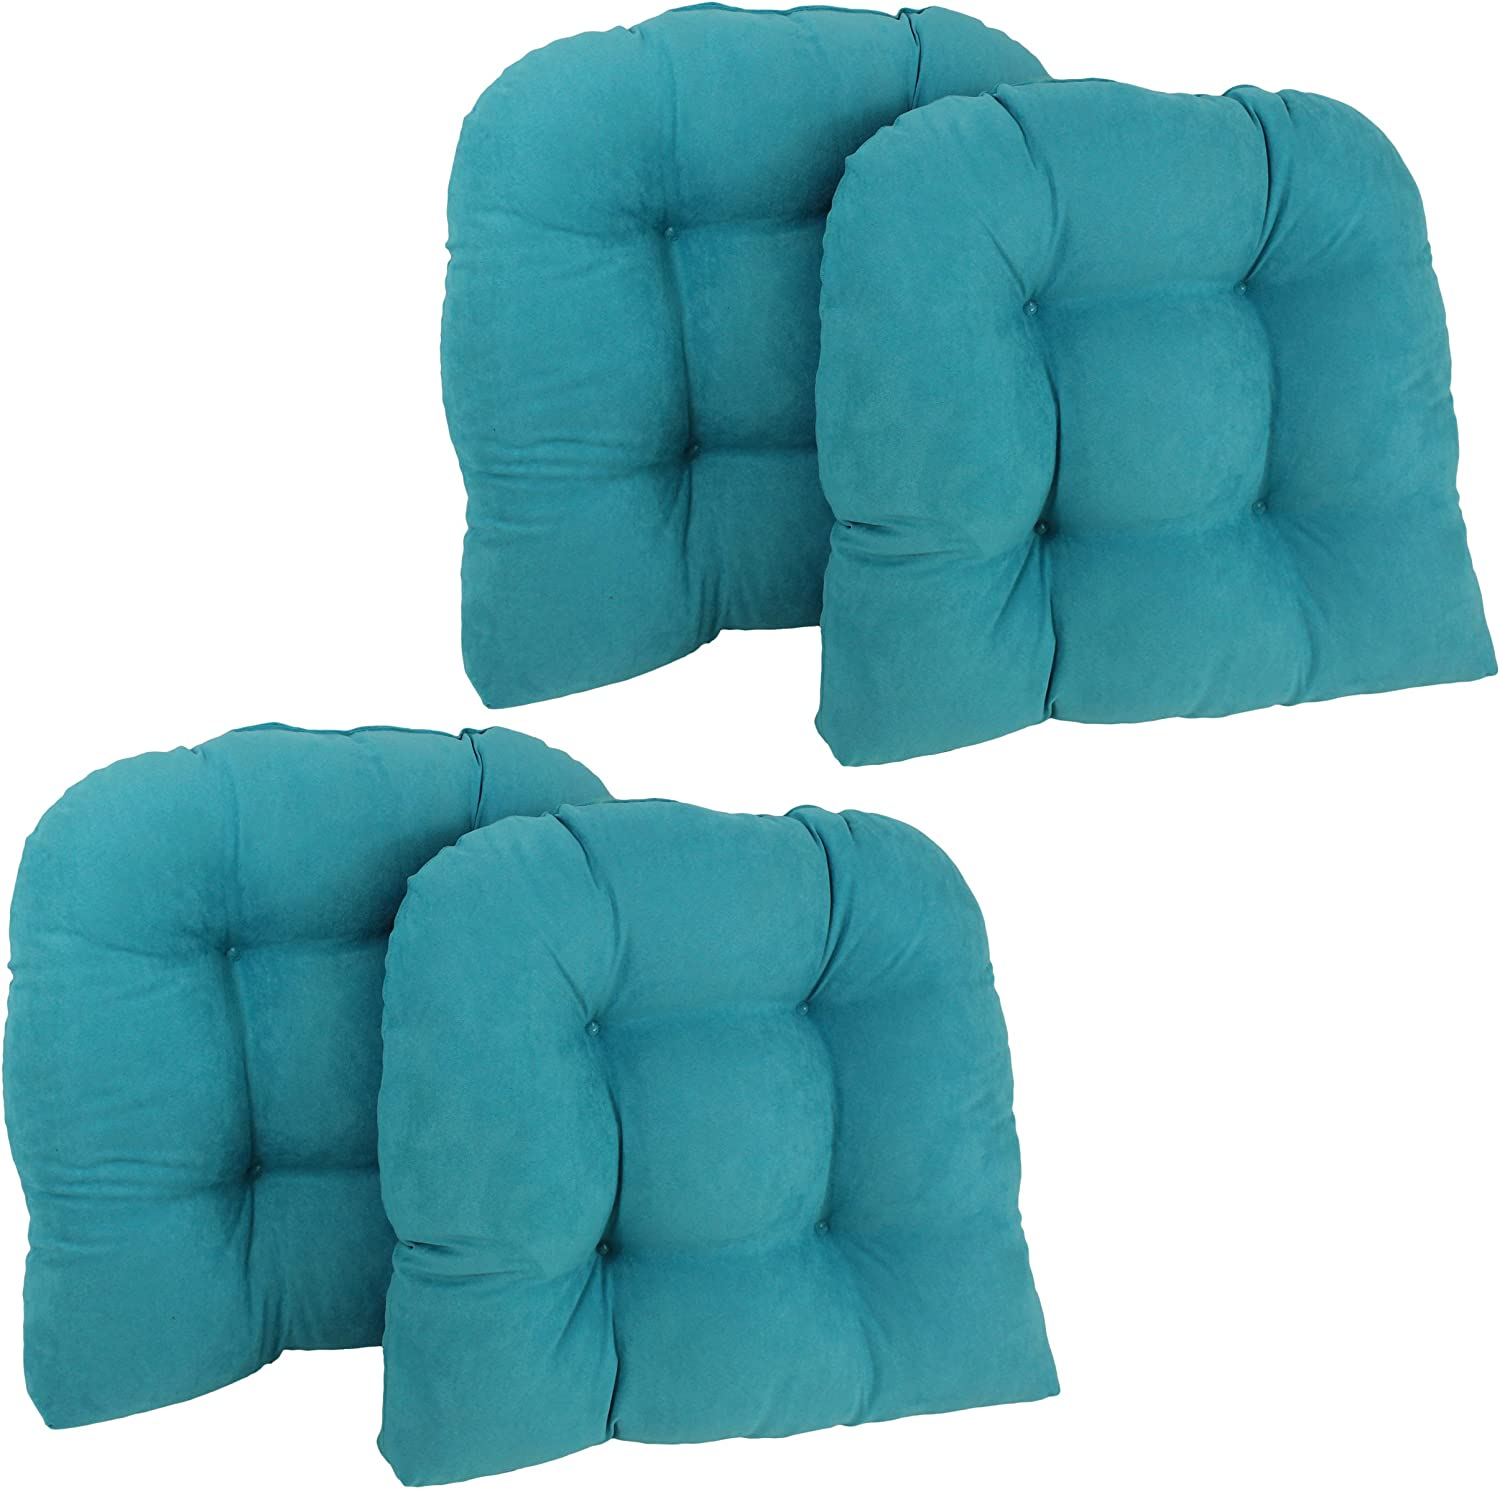 Cheap super special price Blazing Needles U-Shaped Microsuede Cushions Chair Tufted Dining Today's only